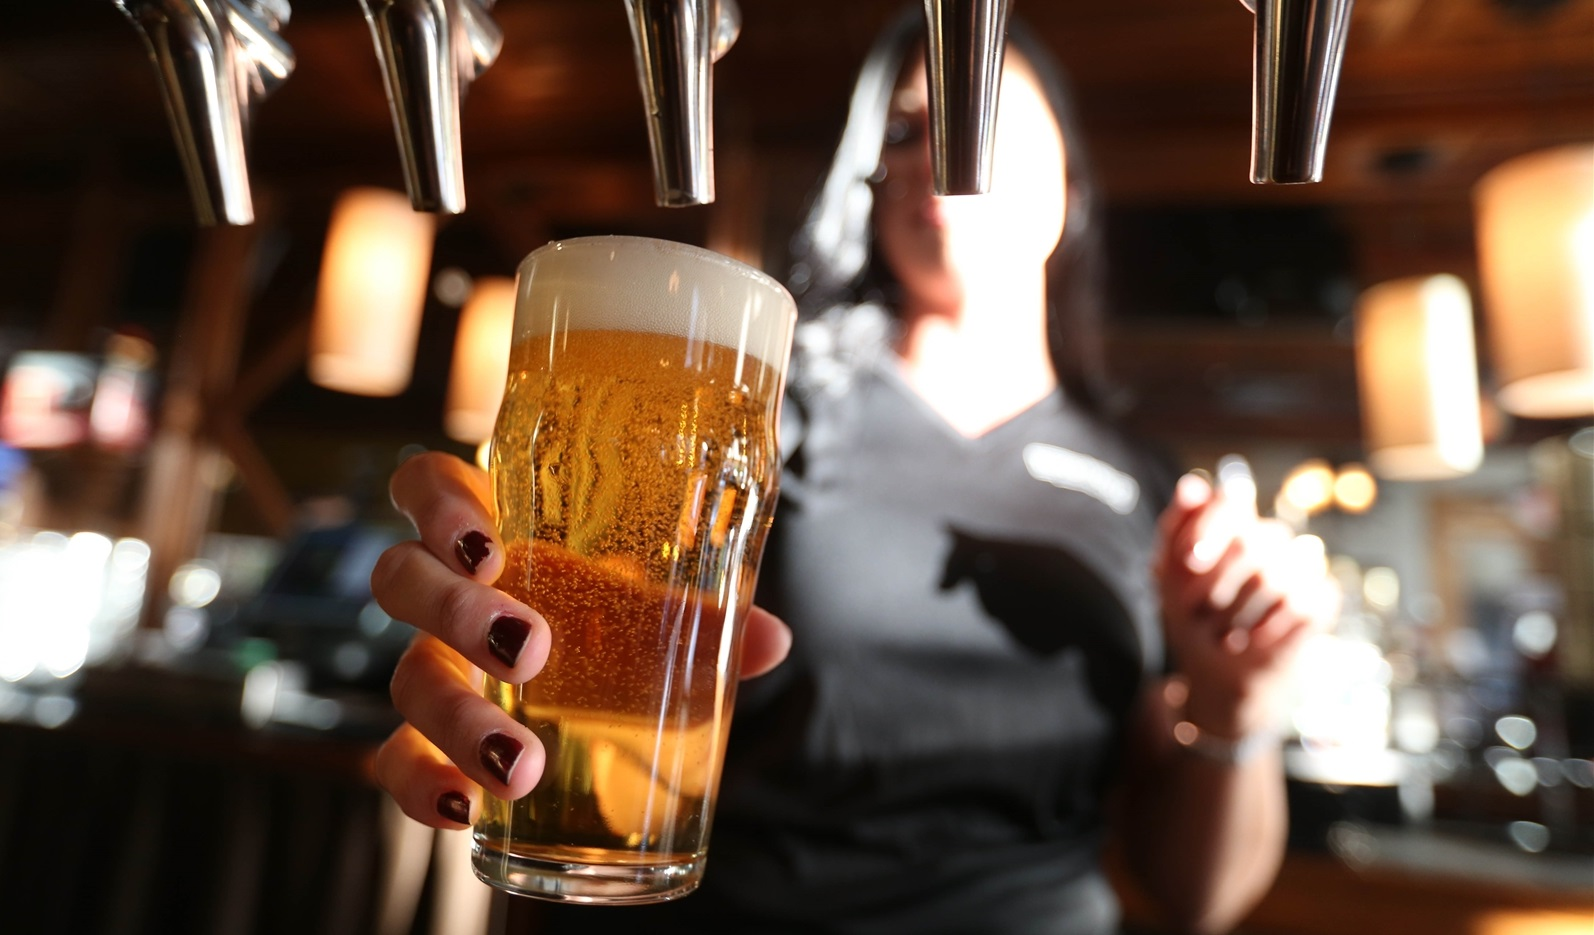 Celebrate National Beer Day by reading about the area's breweries and brew pubs, plus those to come. (Sharon Cantillon/Buffalo News file photo)